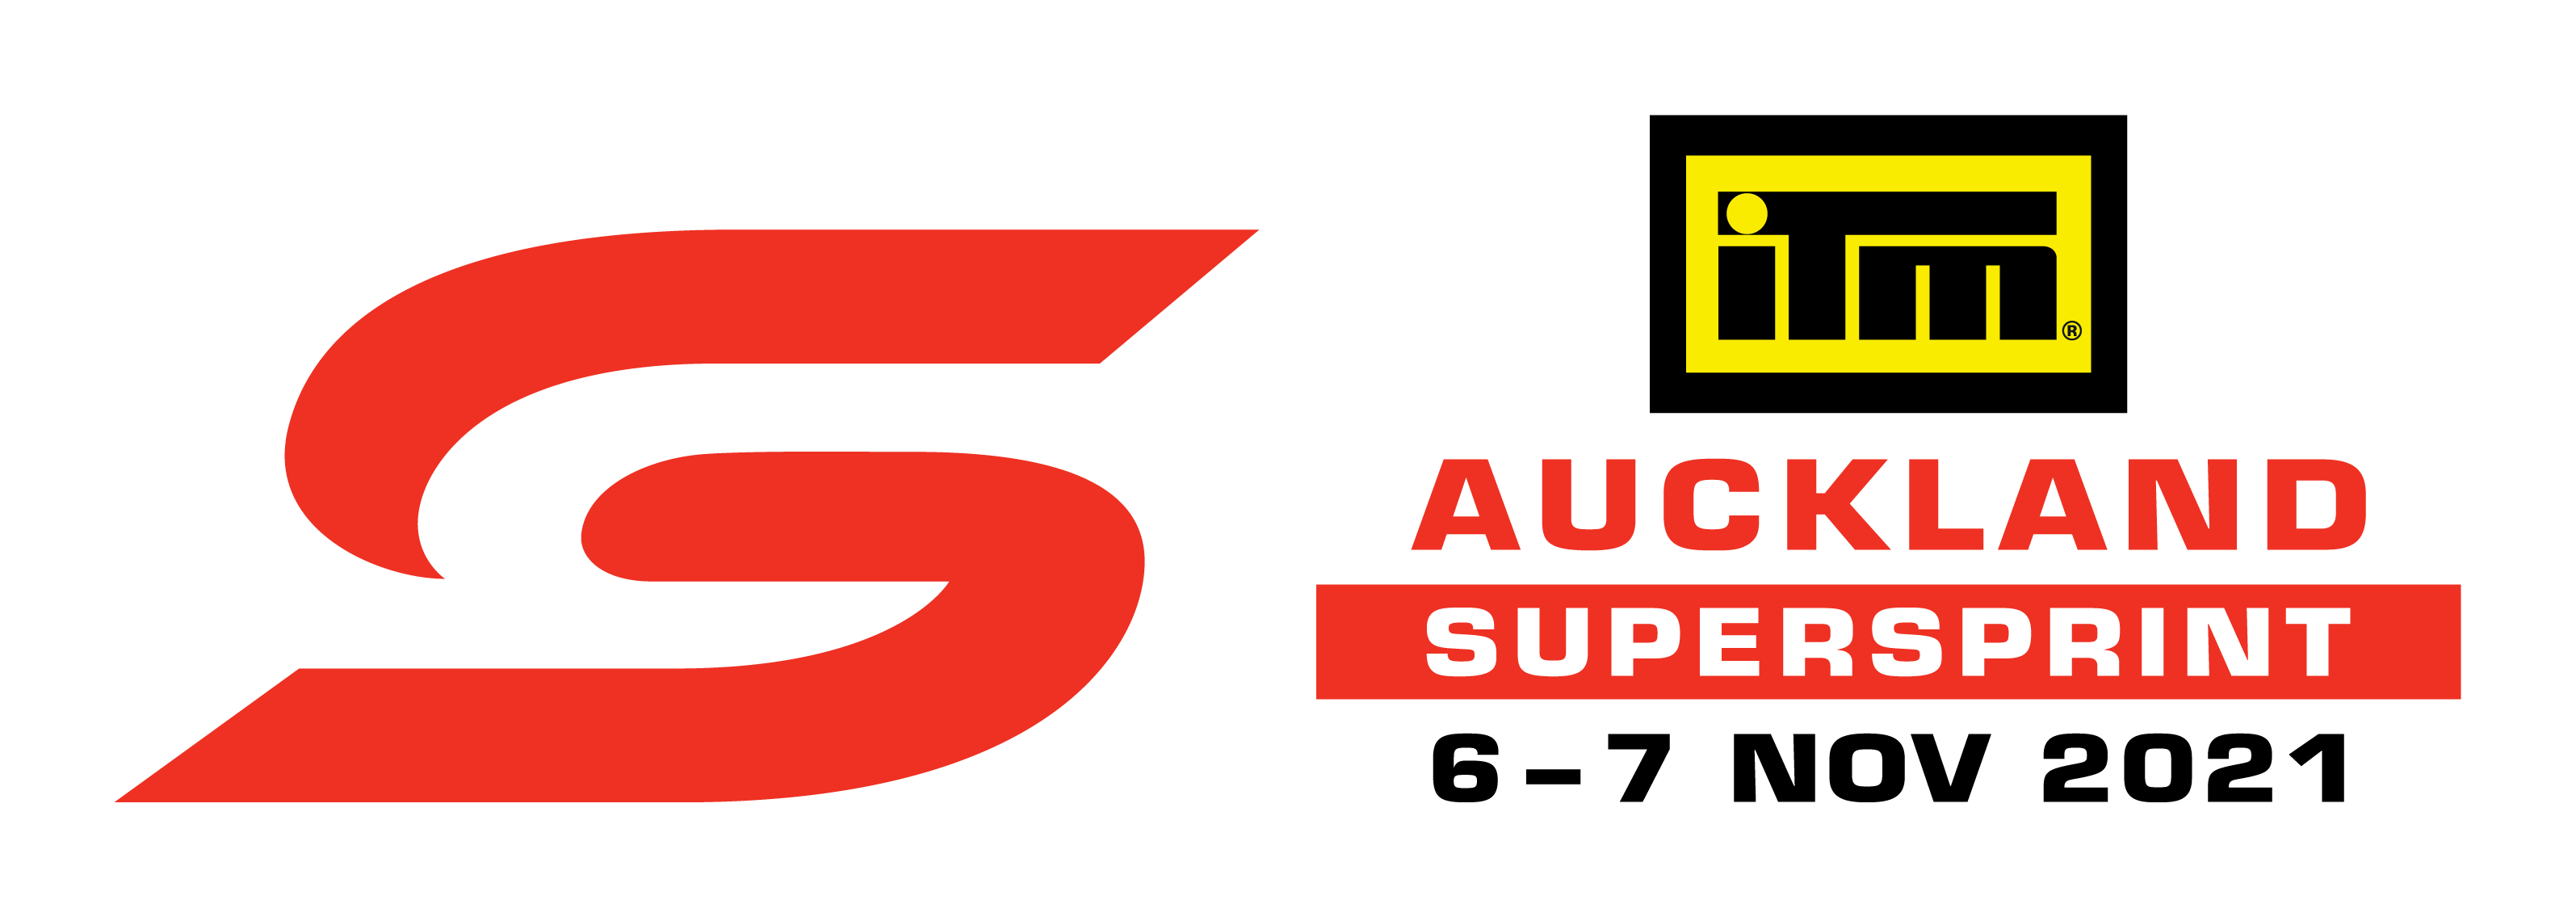 V8 Supercars - ITM Auckland SuperSprint logo